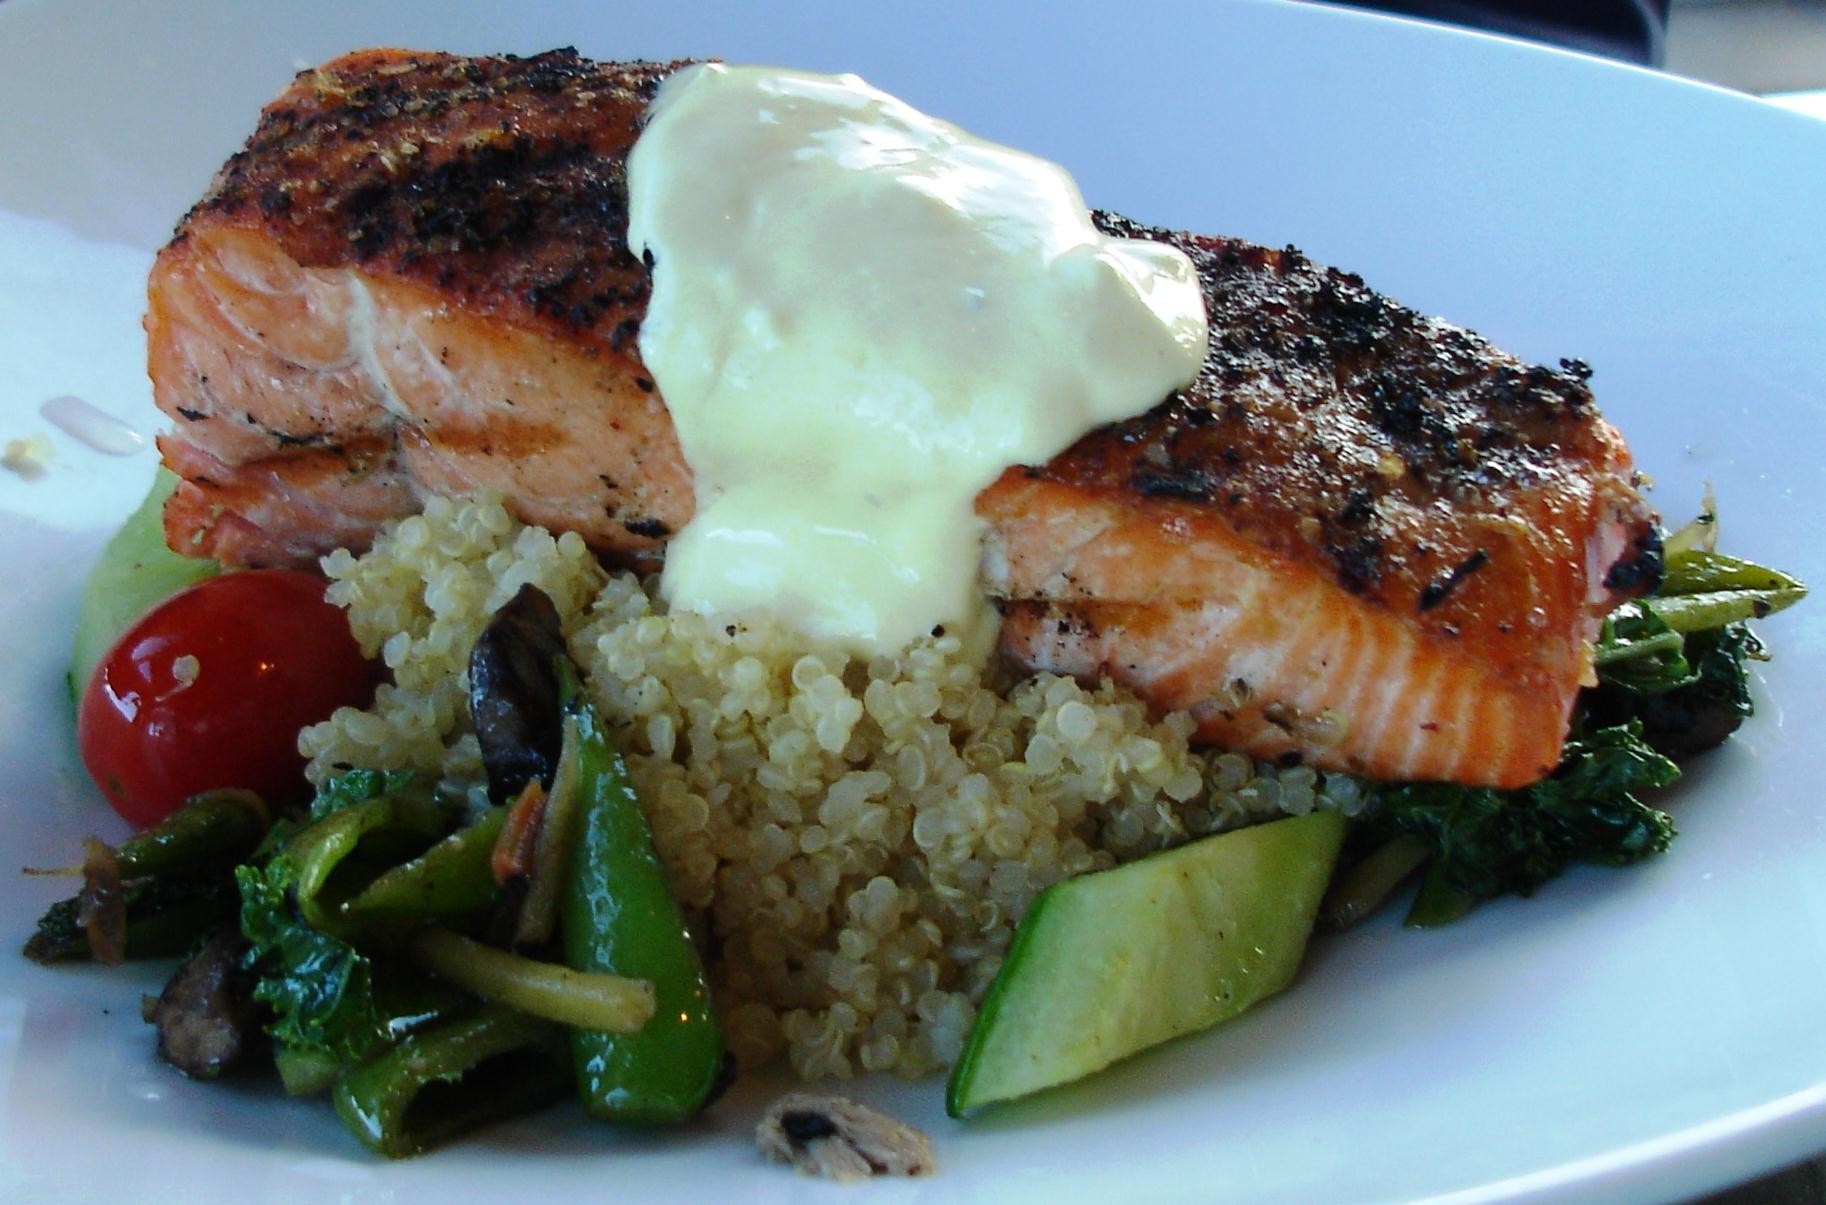 Saffron Salmon, Grilled Wild Salmon Filet